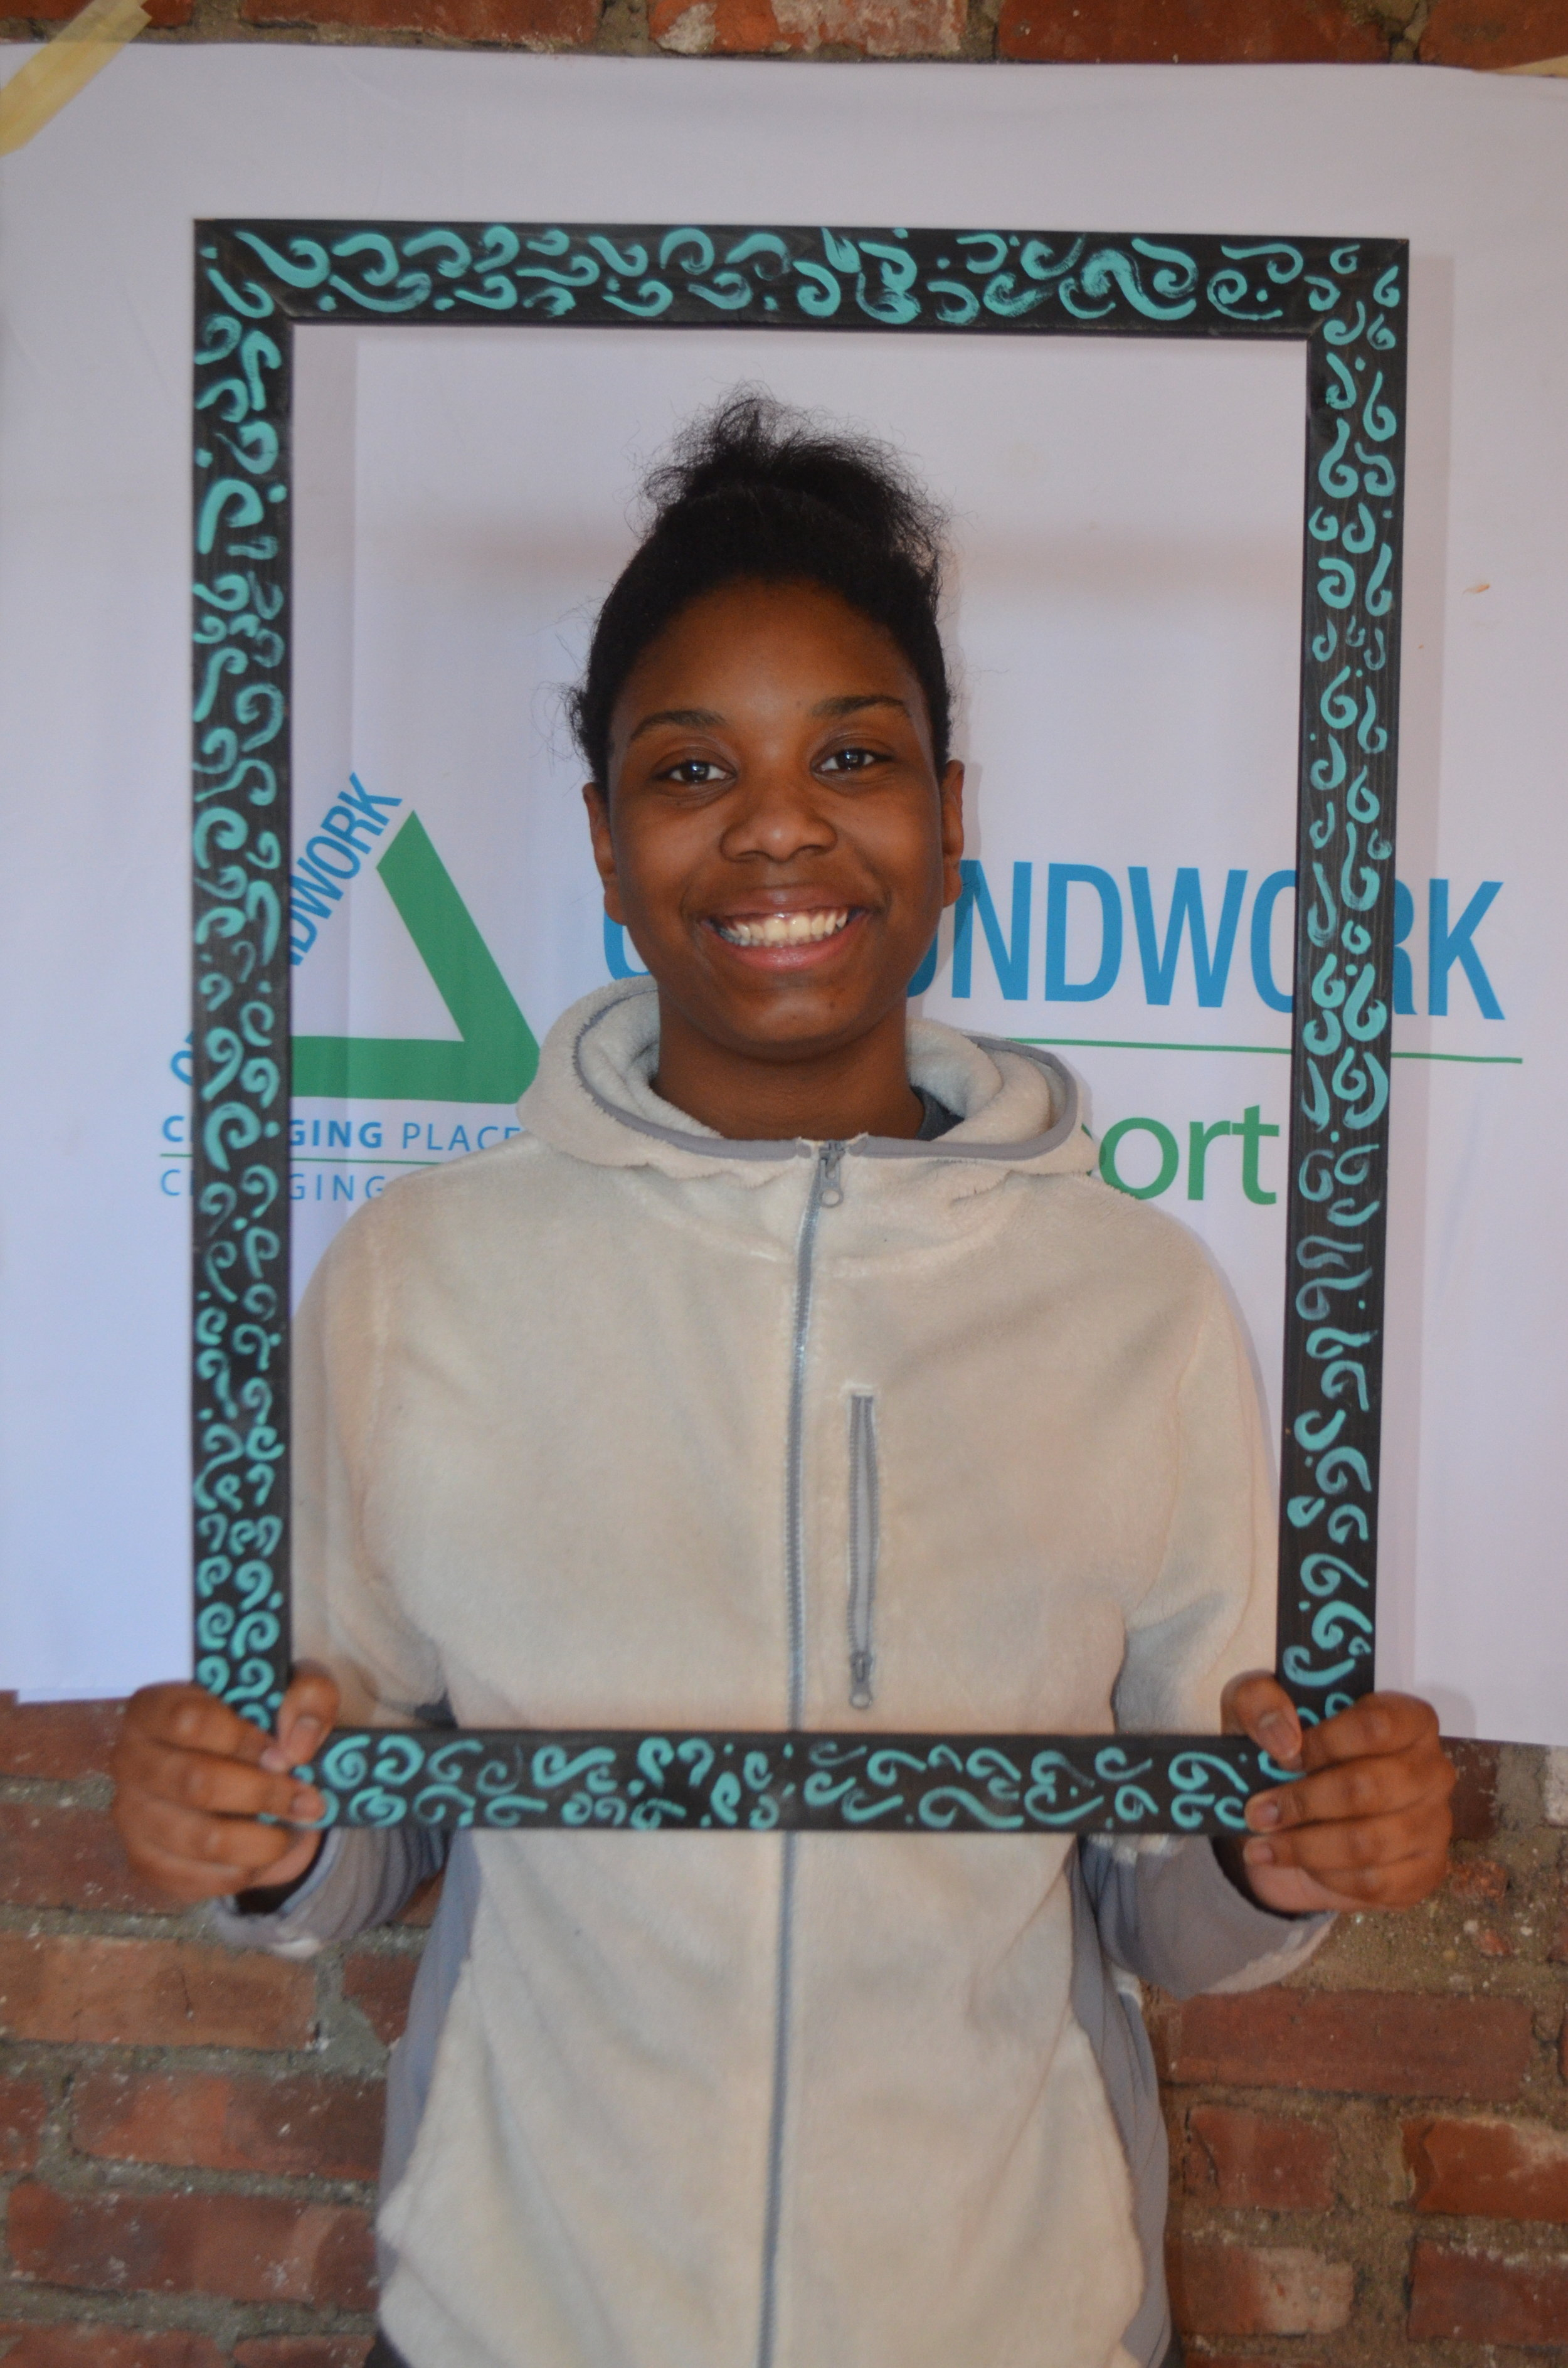 """Nyjah Jenkins  Hello! My name is Nyjah, but some people call me """"Ny"""" for short. I'm 14 years old and LOVE dogs! I actually have one that's a pit/brezzy mix. I go to Fairchild Wheeler and live on the Westside of Bridgeport. When I meet new people I'm shy at first, but once you get to know me I'm pretty funny. I love helping my mom cook and spend time with my 6 sisters, nieces, and little nephew."""